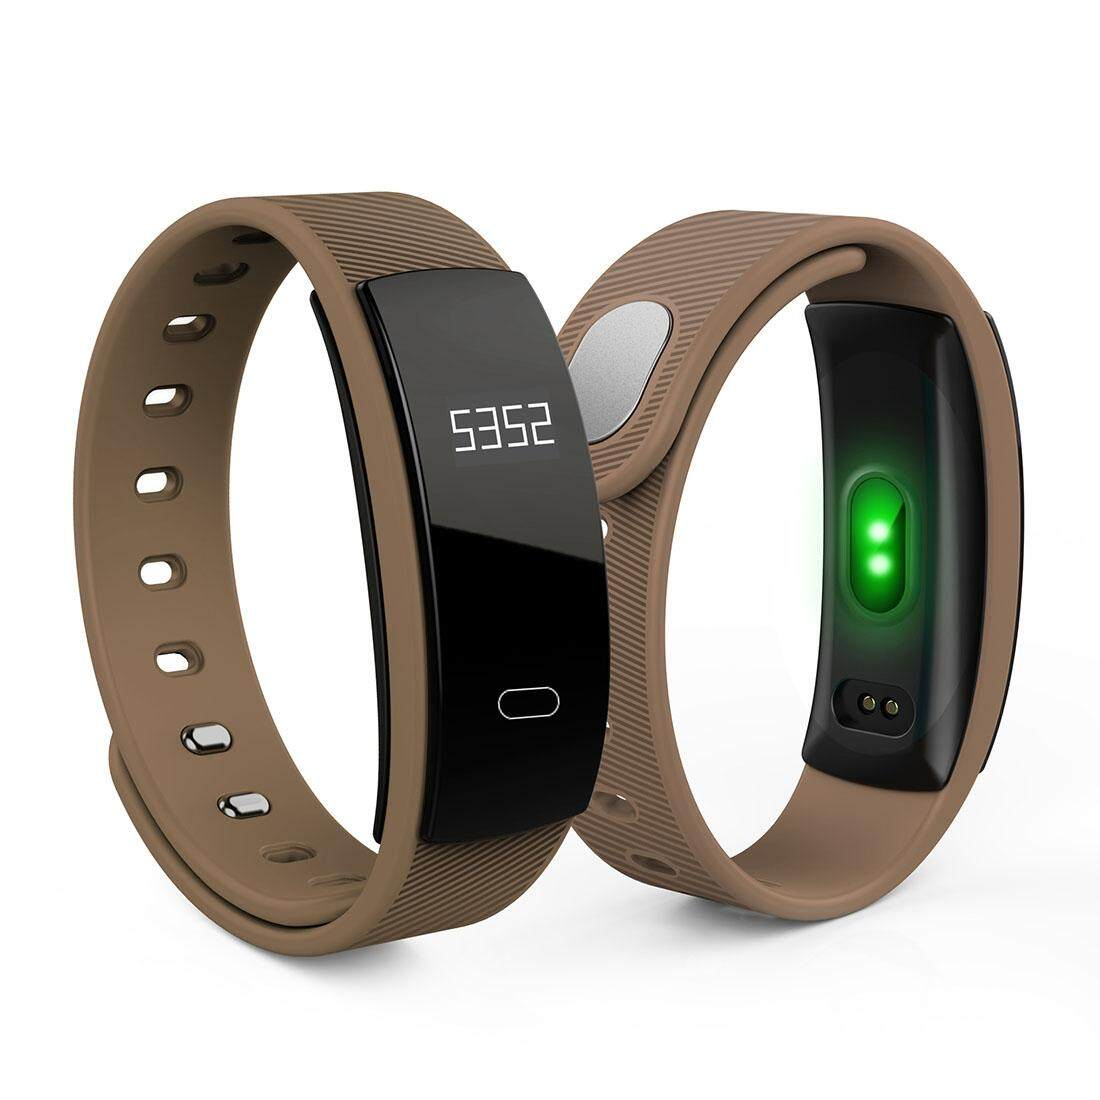 QS80 Wristband Heart Rate Monitor Blood Pressure Monitor Smart Watch Sports Reminder Smart Bracelet For IOS And Android